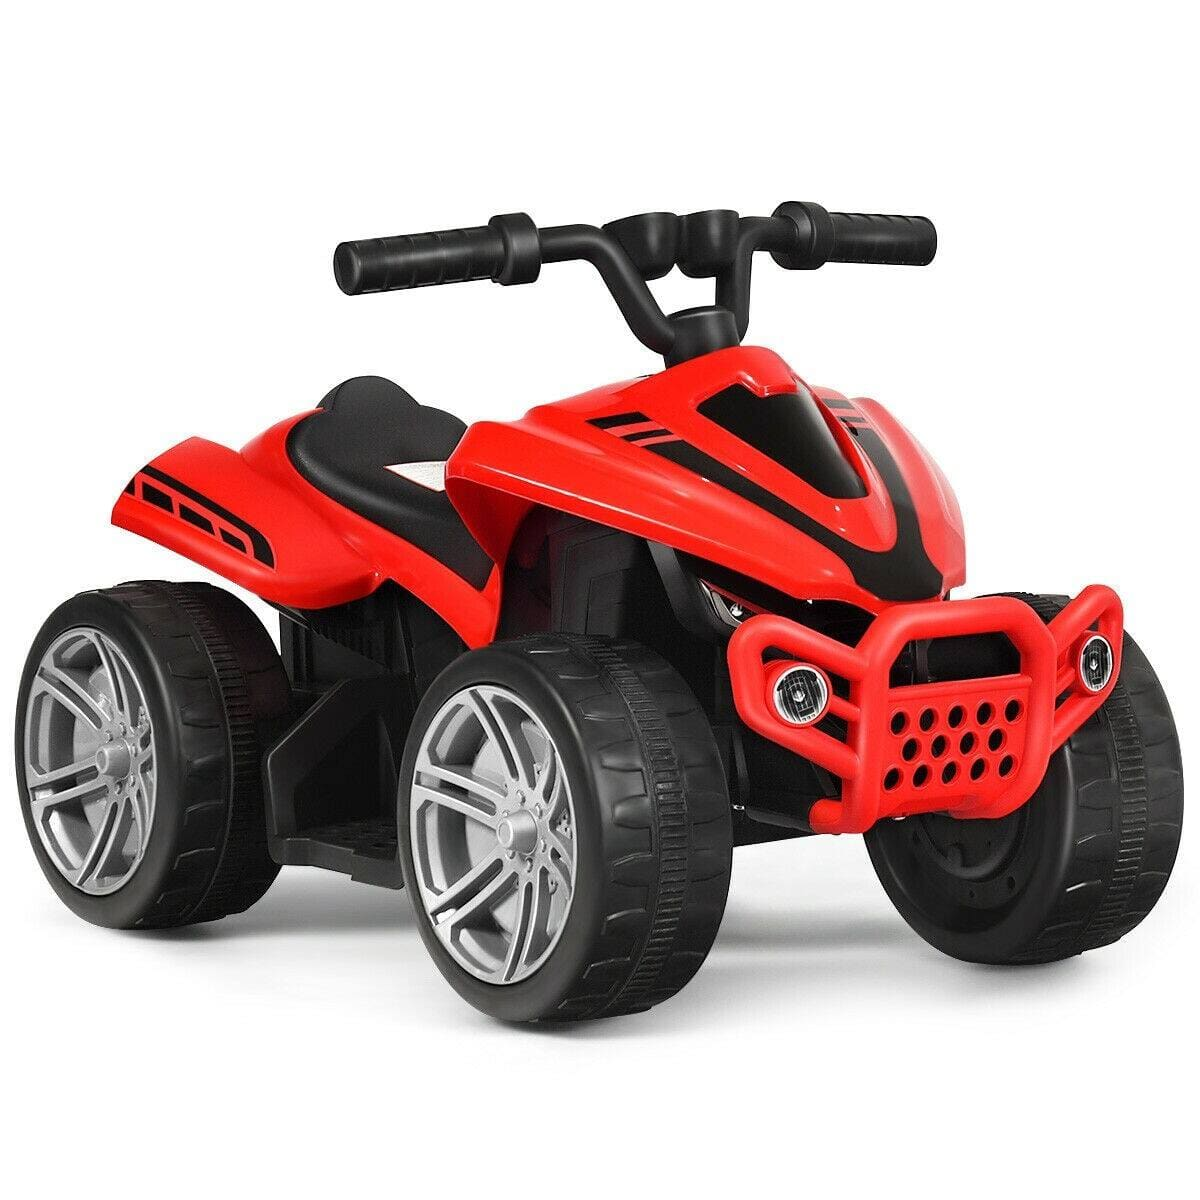 Kids 4-Wheeler ATV Quad Battery Powered Ride On Car for $61.95 + Free Shipping